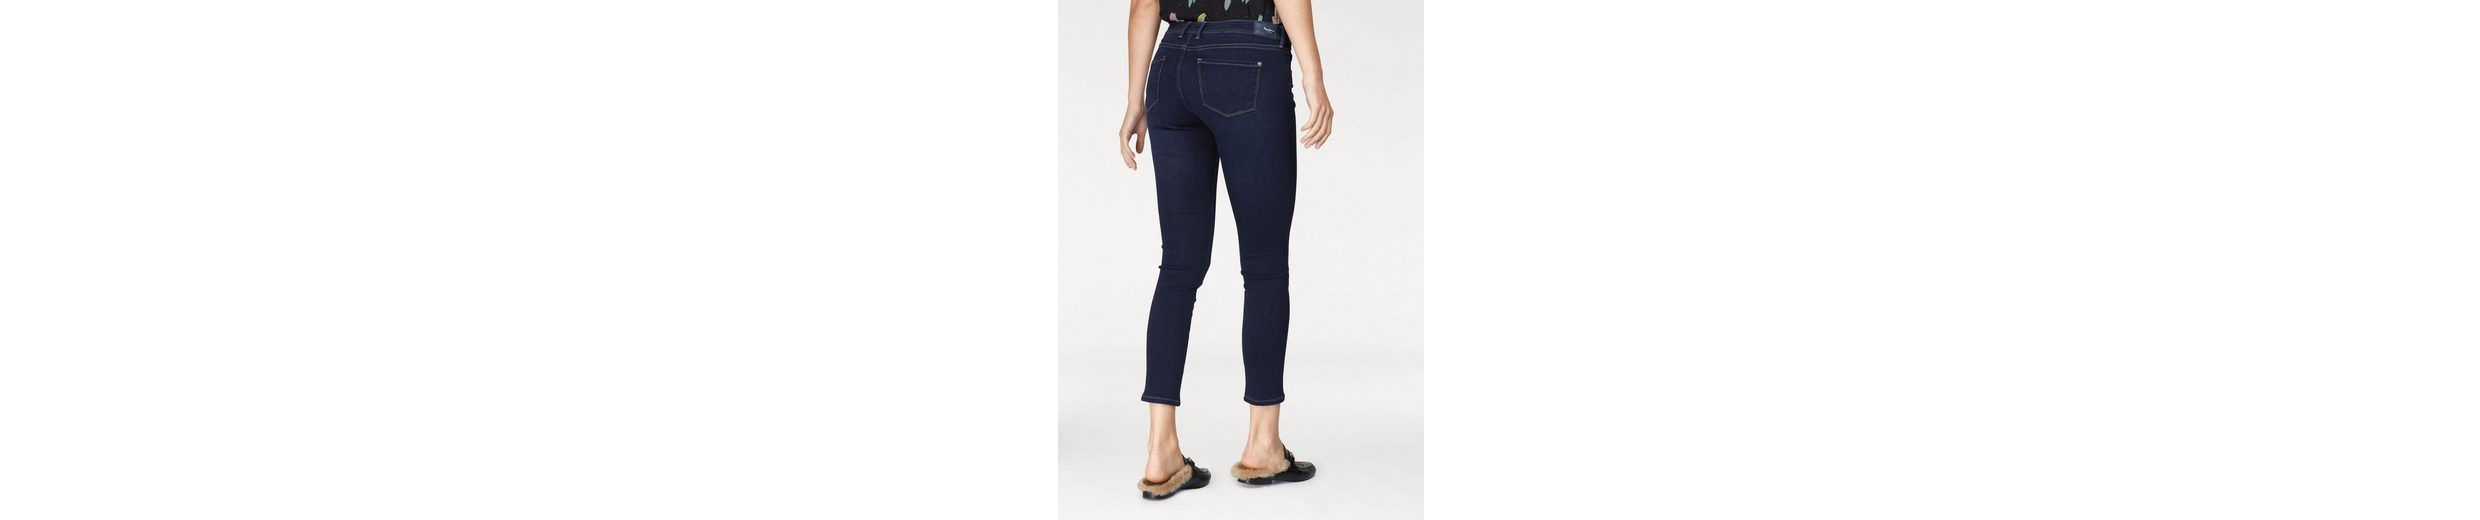 Pepe Jeans Skinny-fit-Jeans LOLA, mit Ankle-Leg